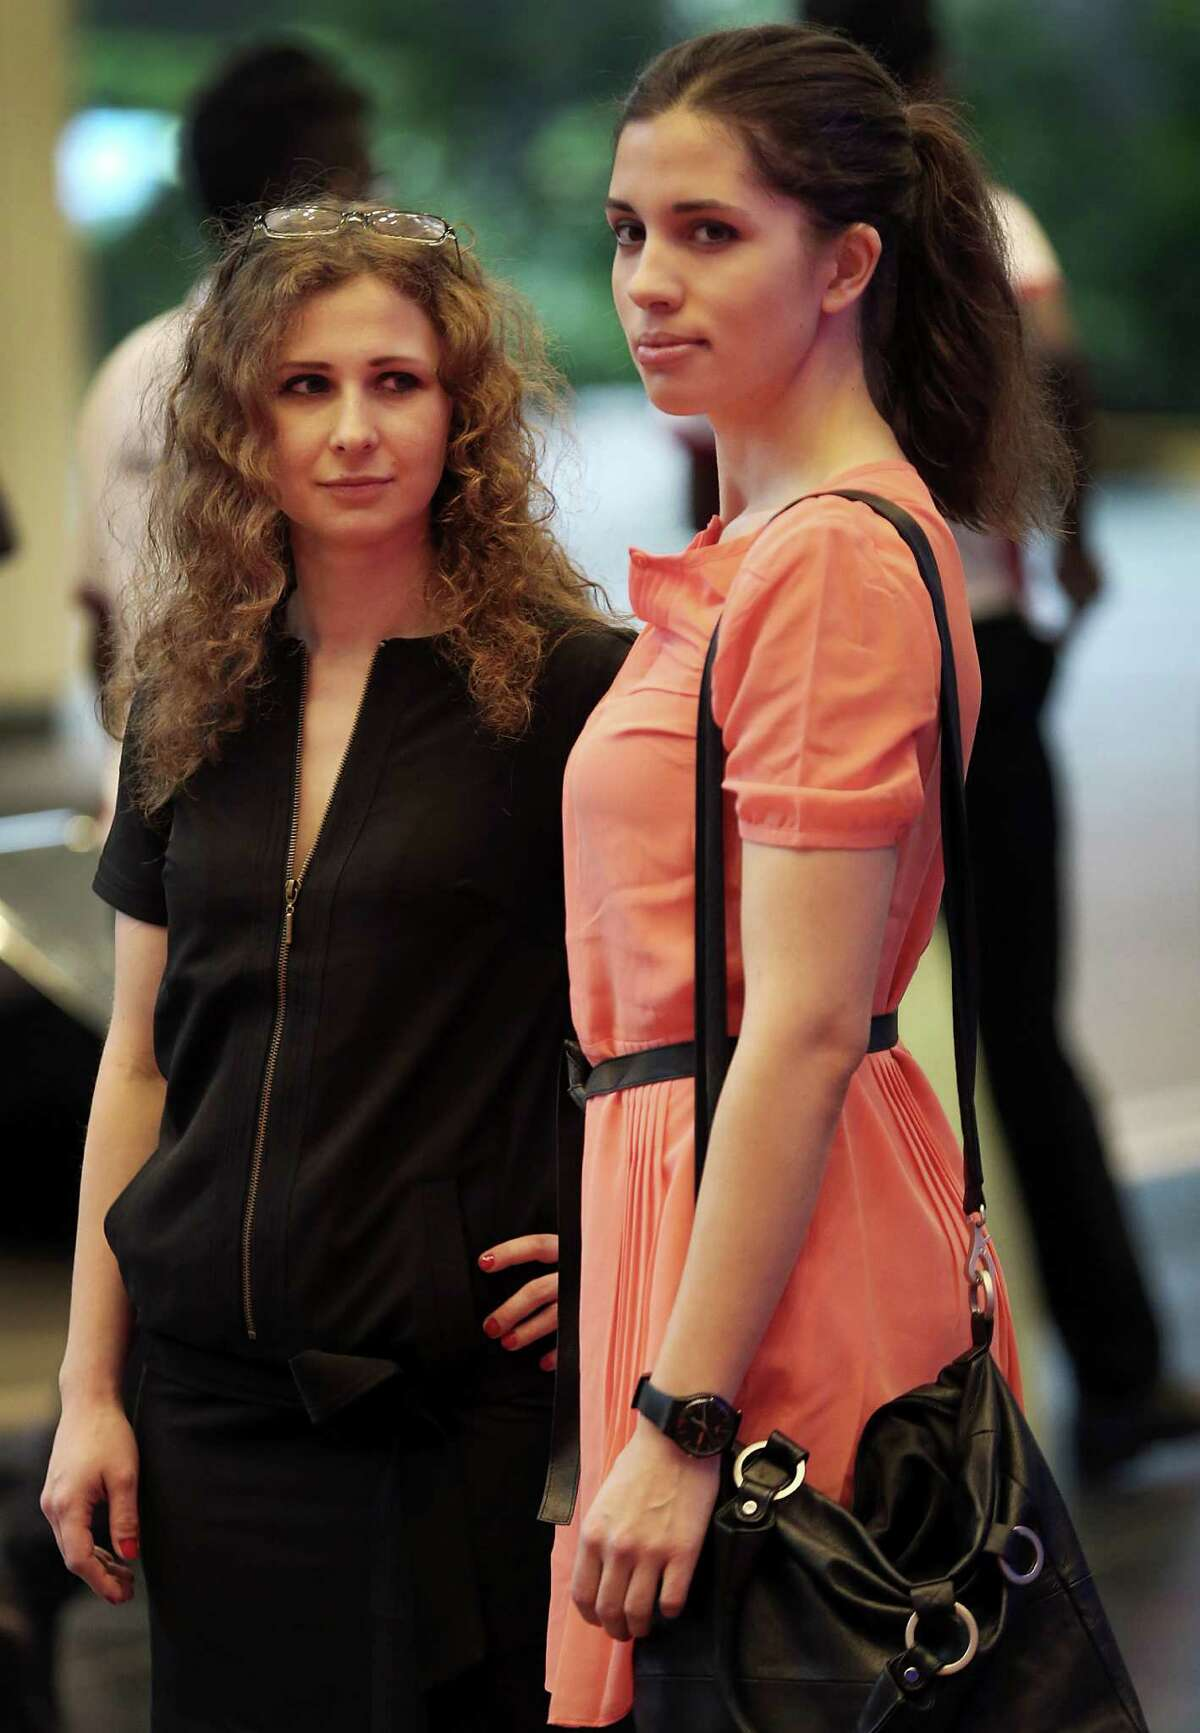 Russian punk band Pussy Riot members Nadezhda Tolokonnikova, right, and Maria Alekhina arrive on Saturday, Jan. 18, 2014 for the Prudential Eye Awards in Singapore. They were in the city-state to attend the inaugural Prudential Eye Awards along with other international artists, where they were nominated for an award in the digital/video category for their performances, including the